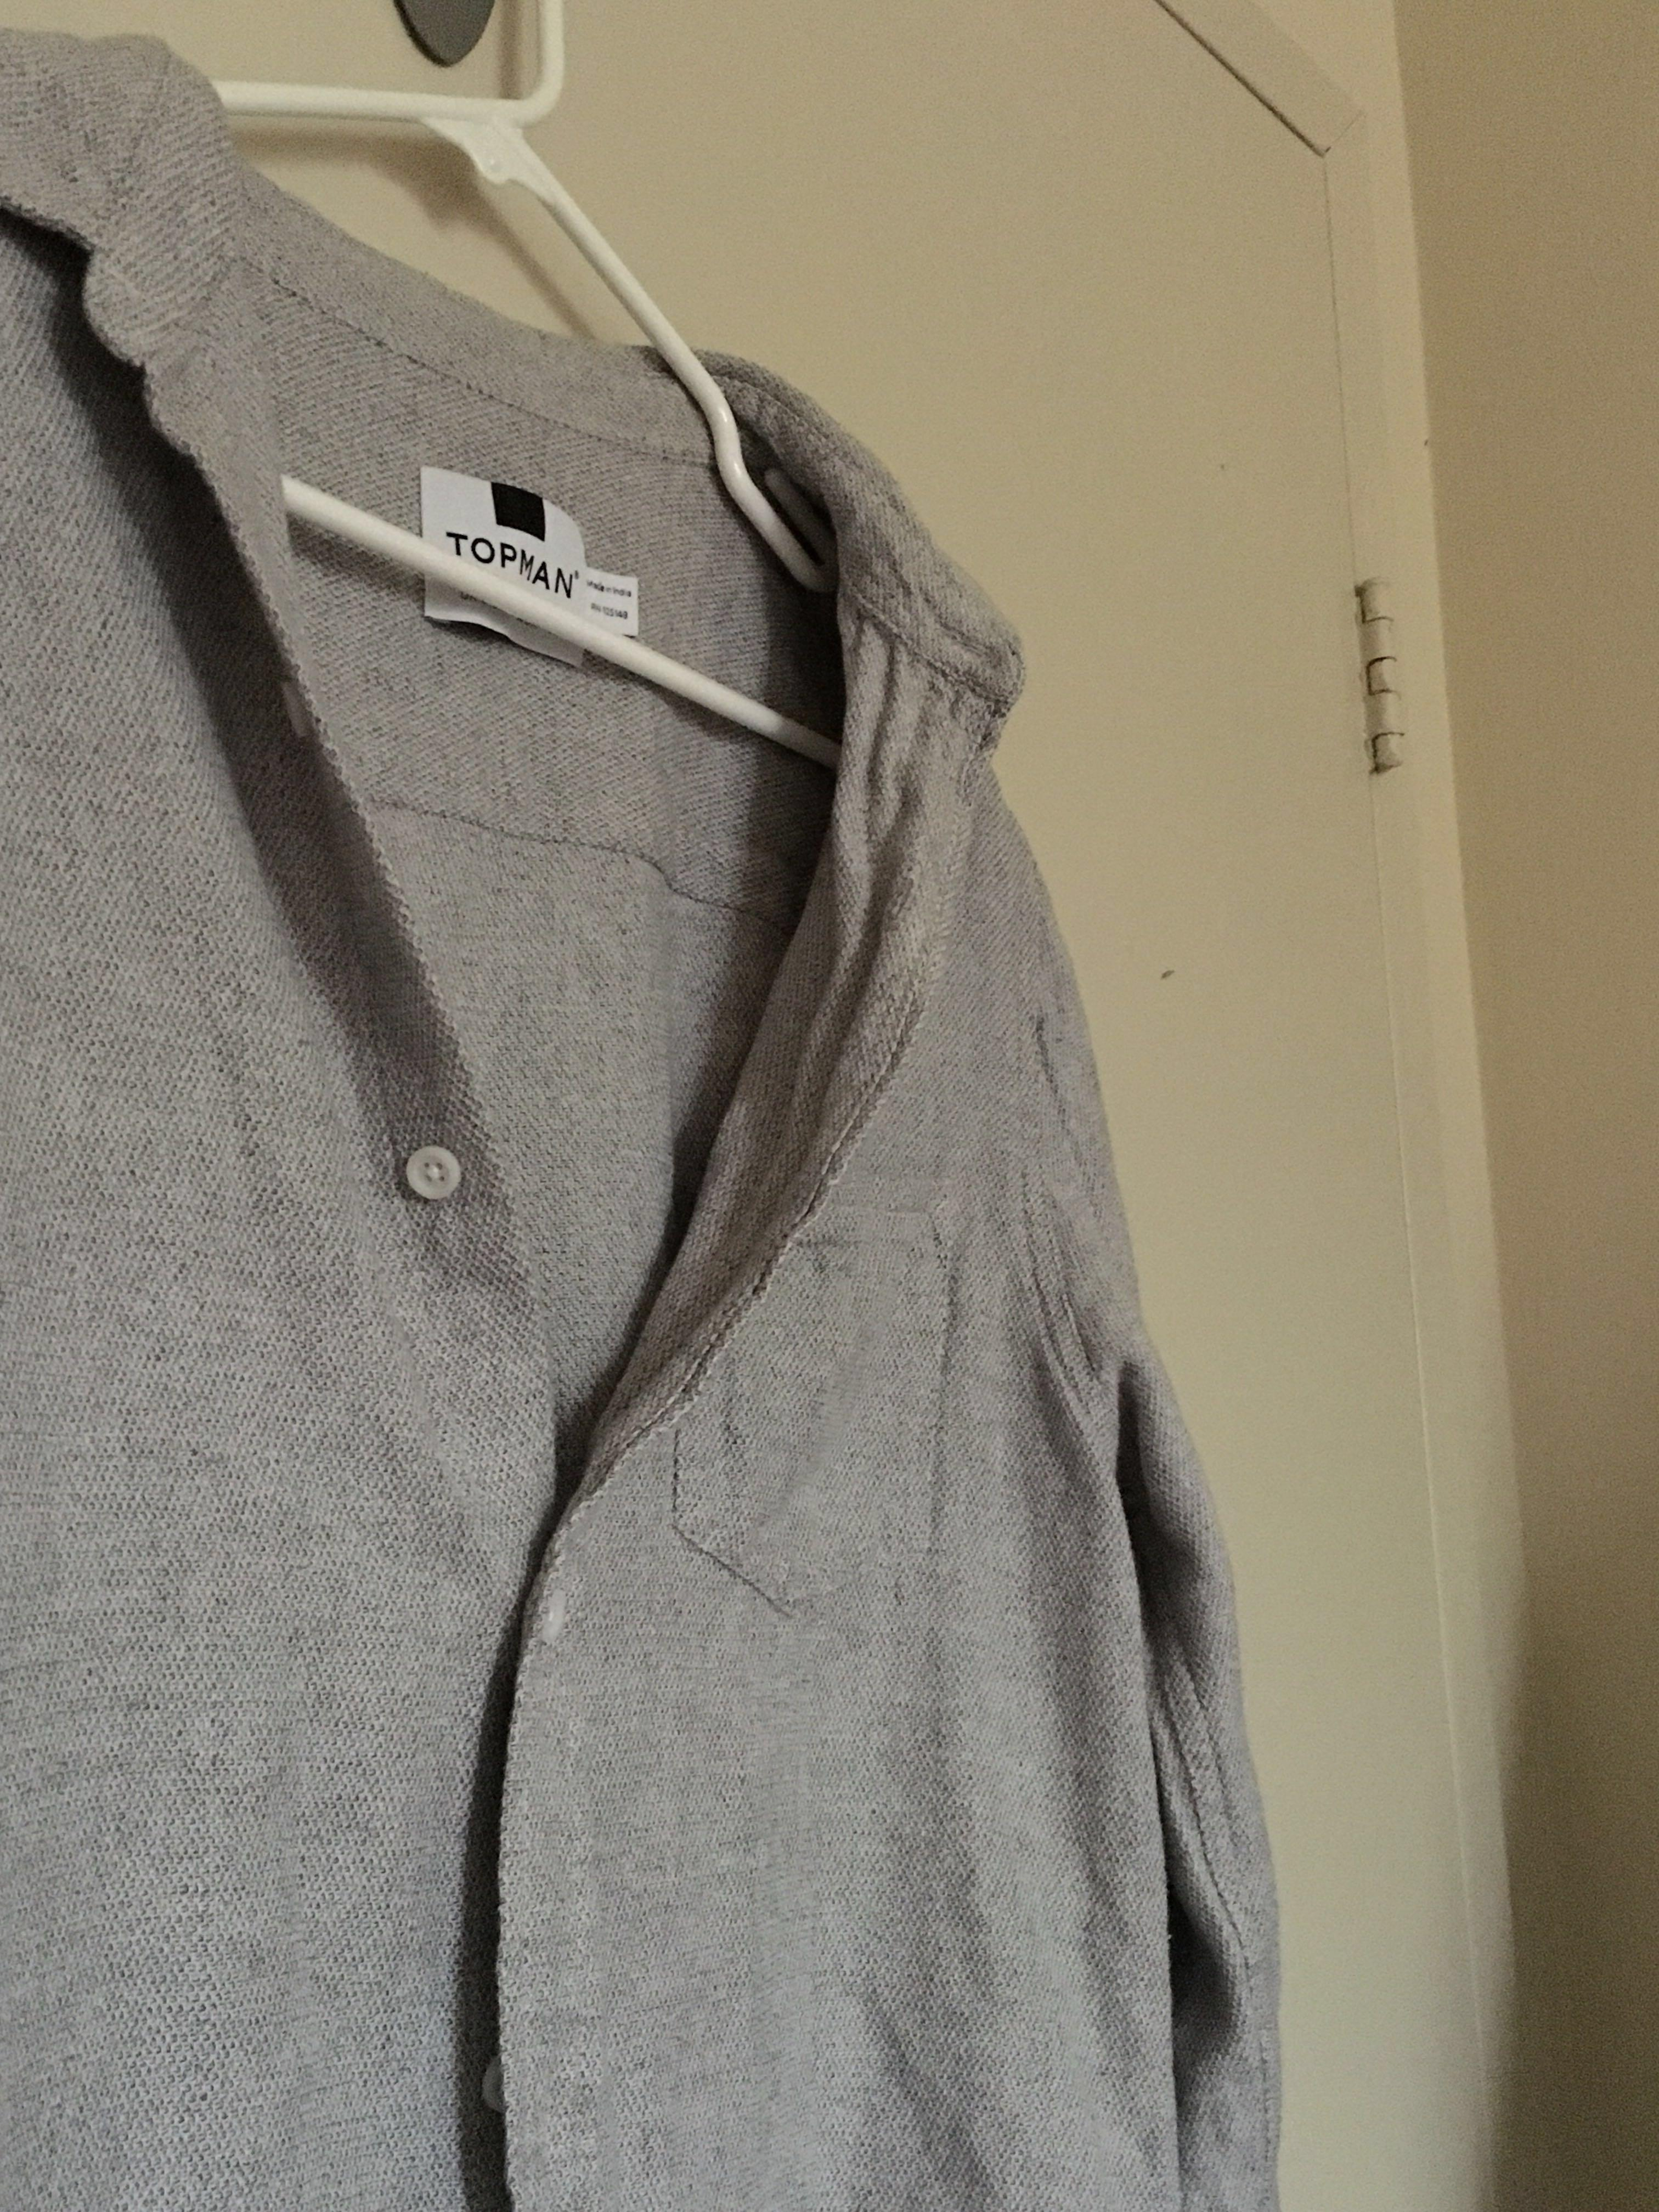 Topshop oversized grey thick button up